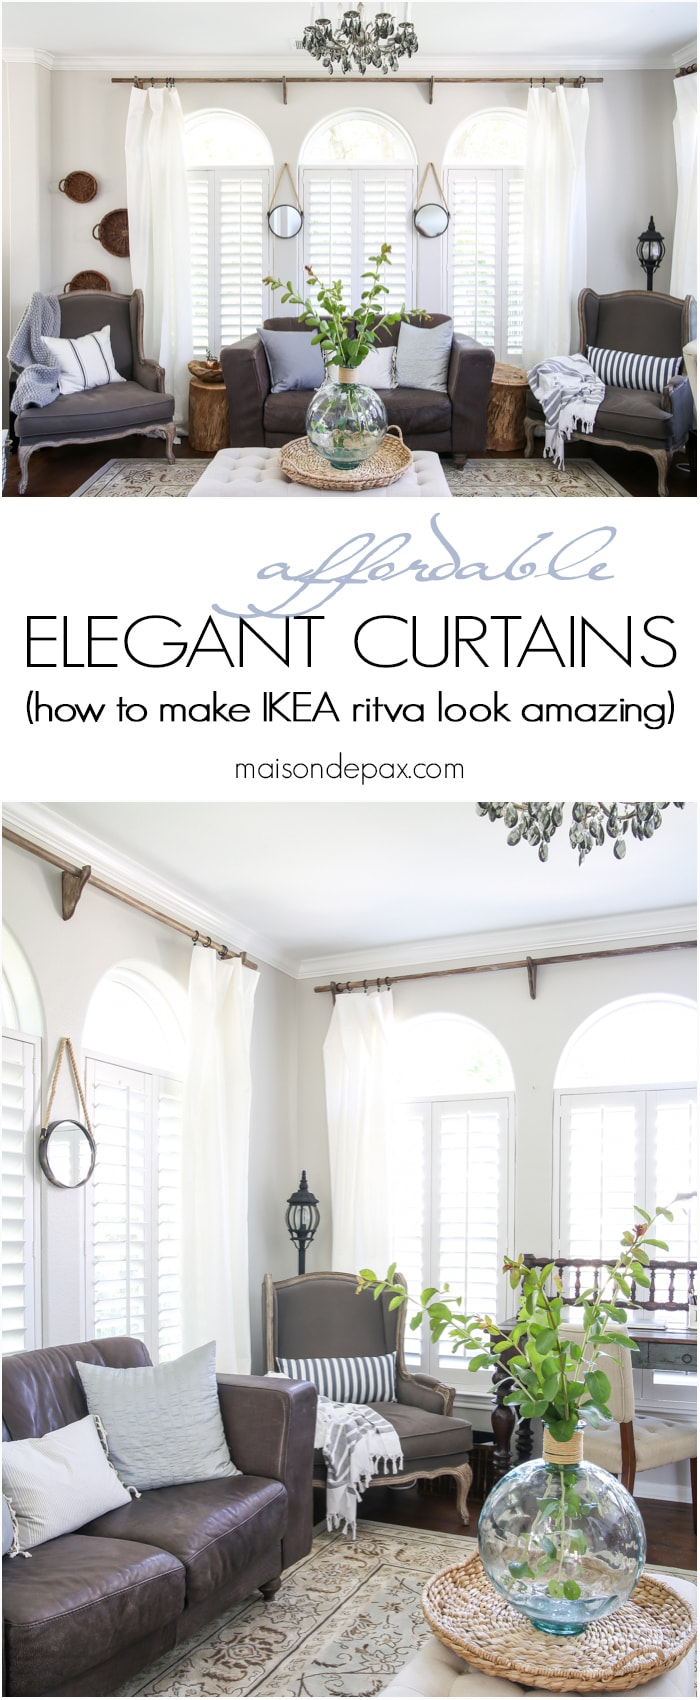 Ikea Ritva white curtains with diy curtain rods: affordable decorating ideas | maisondepax.com